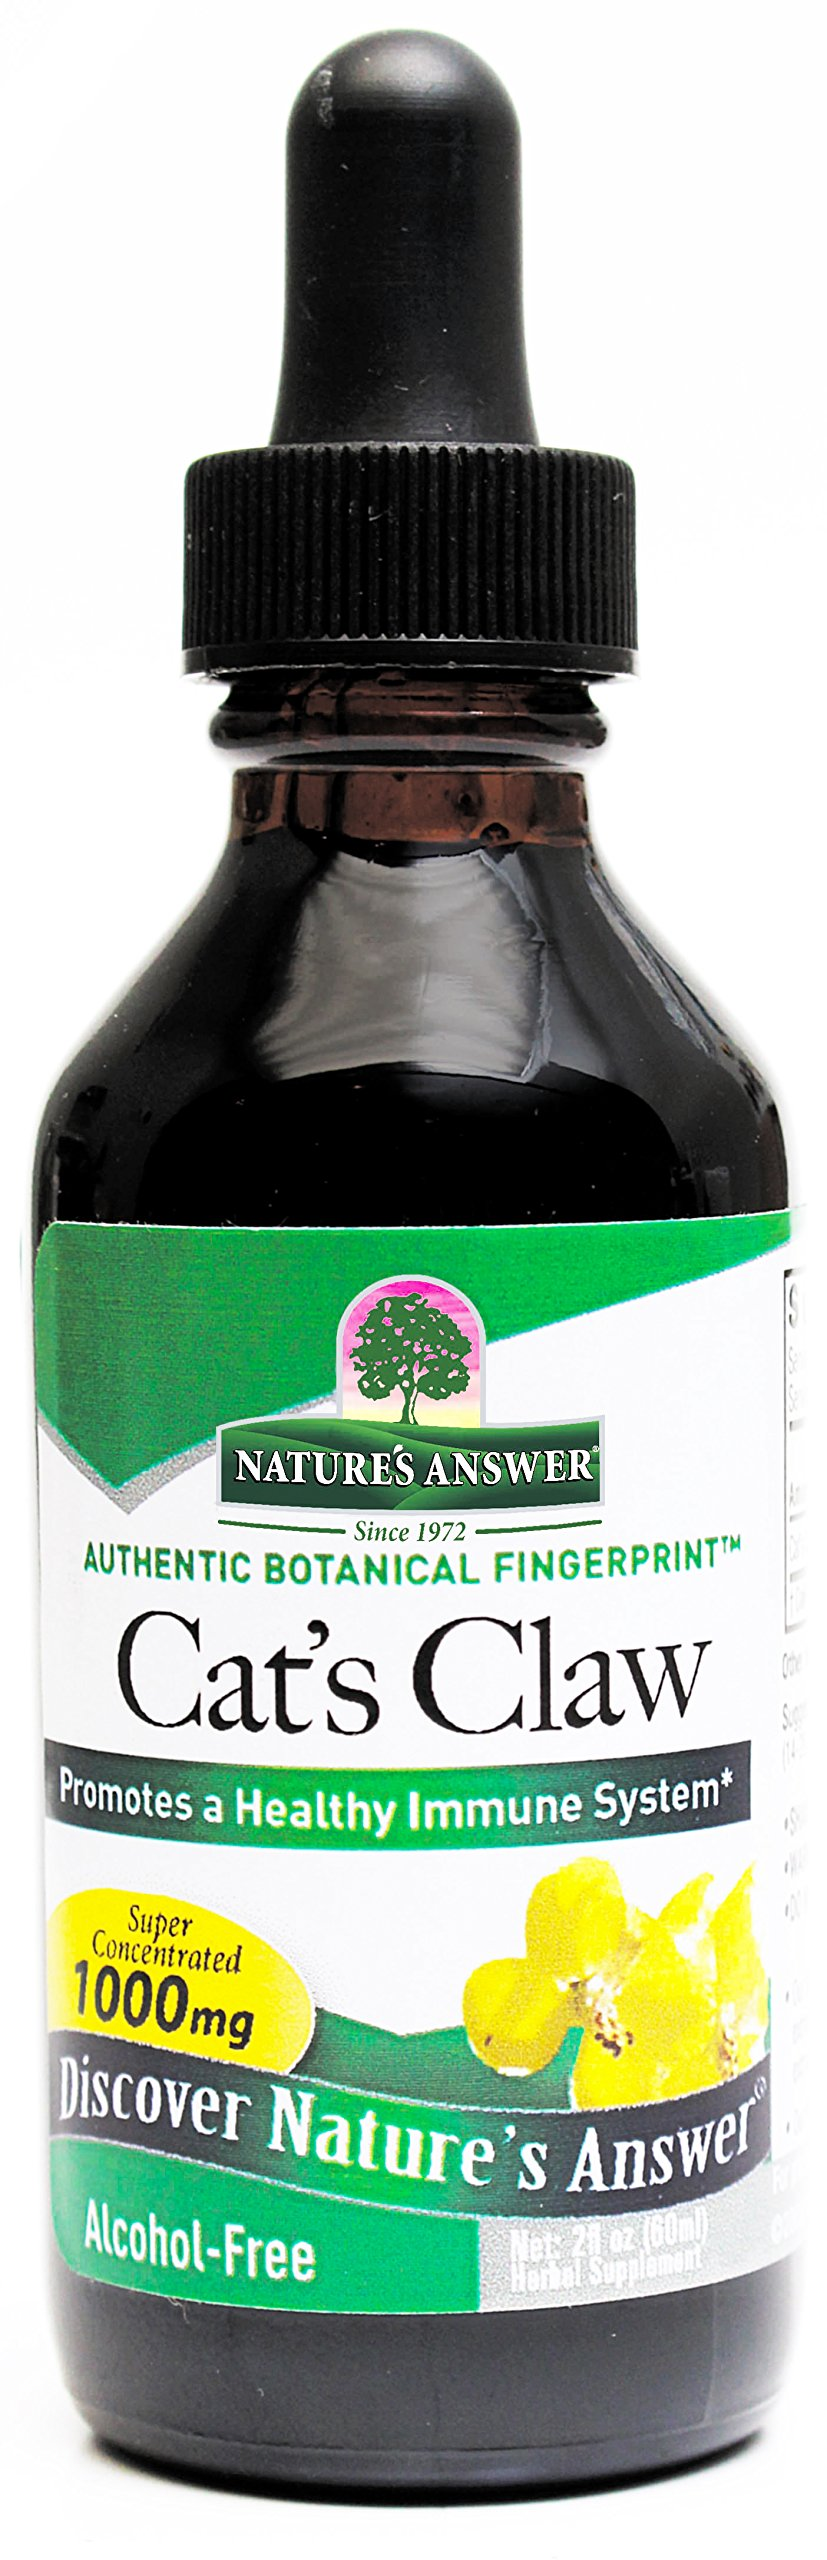 Nature's Answer Alcohol-Free Cat's Claw Inner Bark, 2-Fluid Ounces